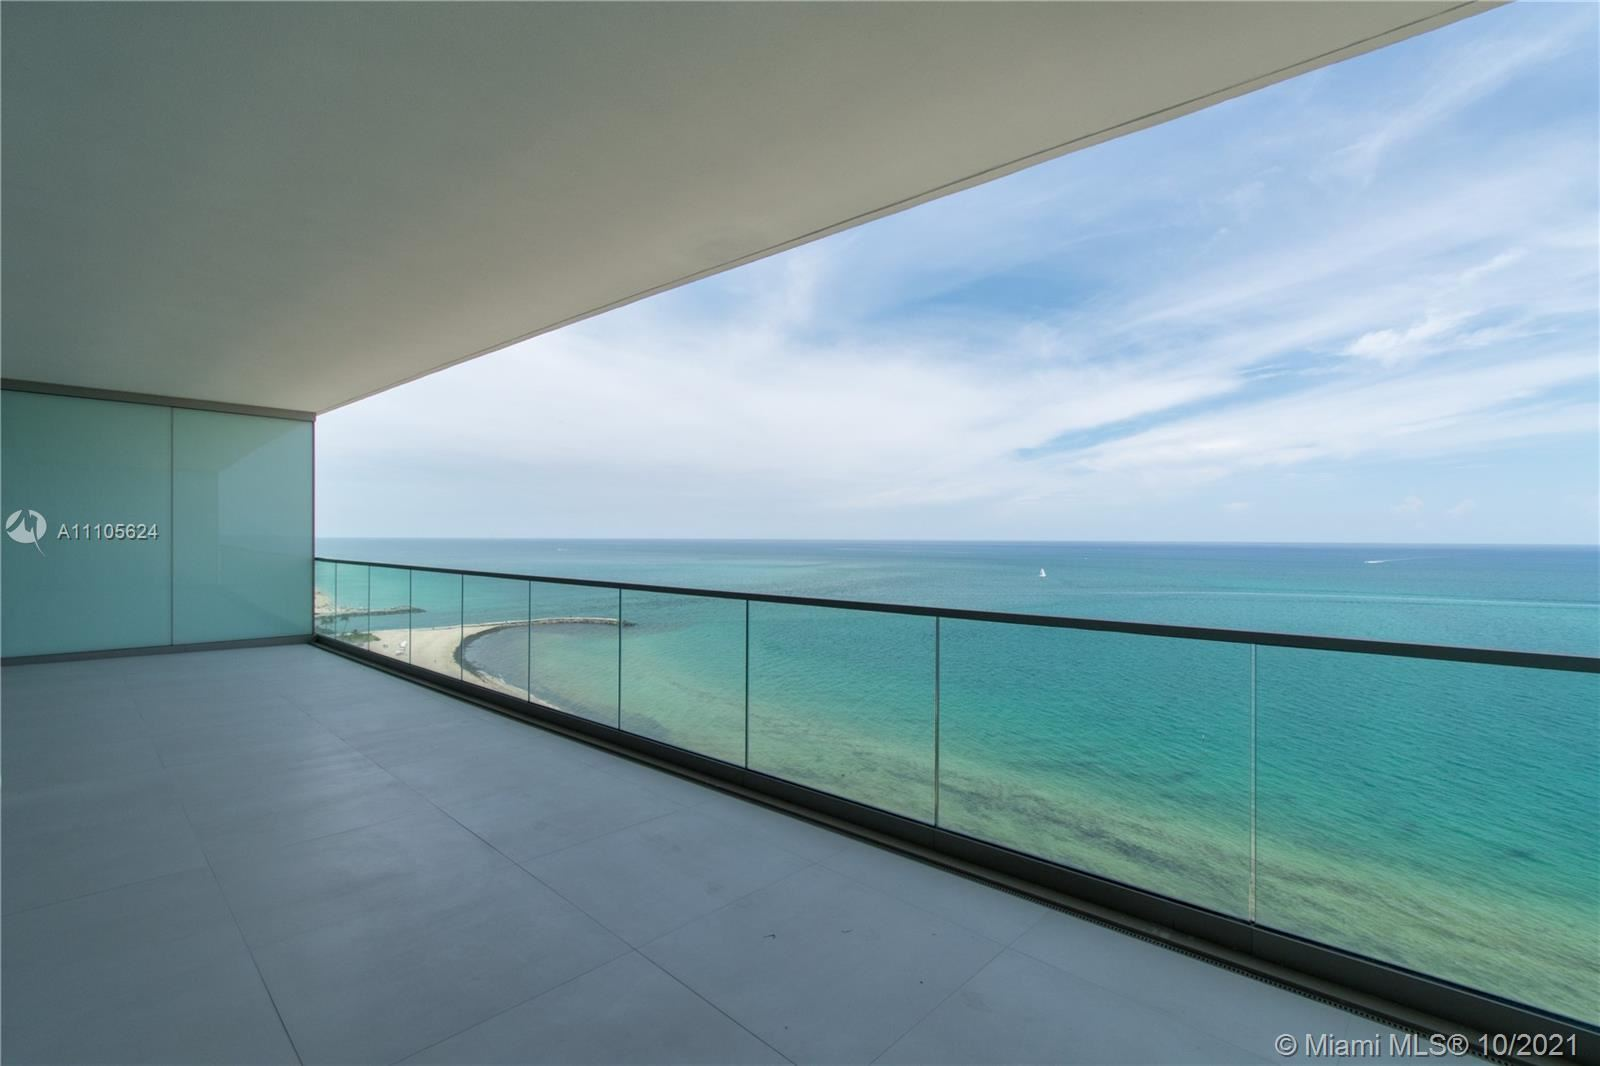 10203 Collins Ave #1903N, Bal Harbour, FL 33154 - #: A11105624